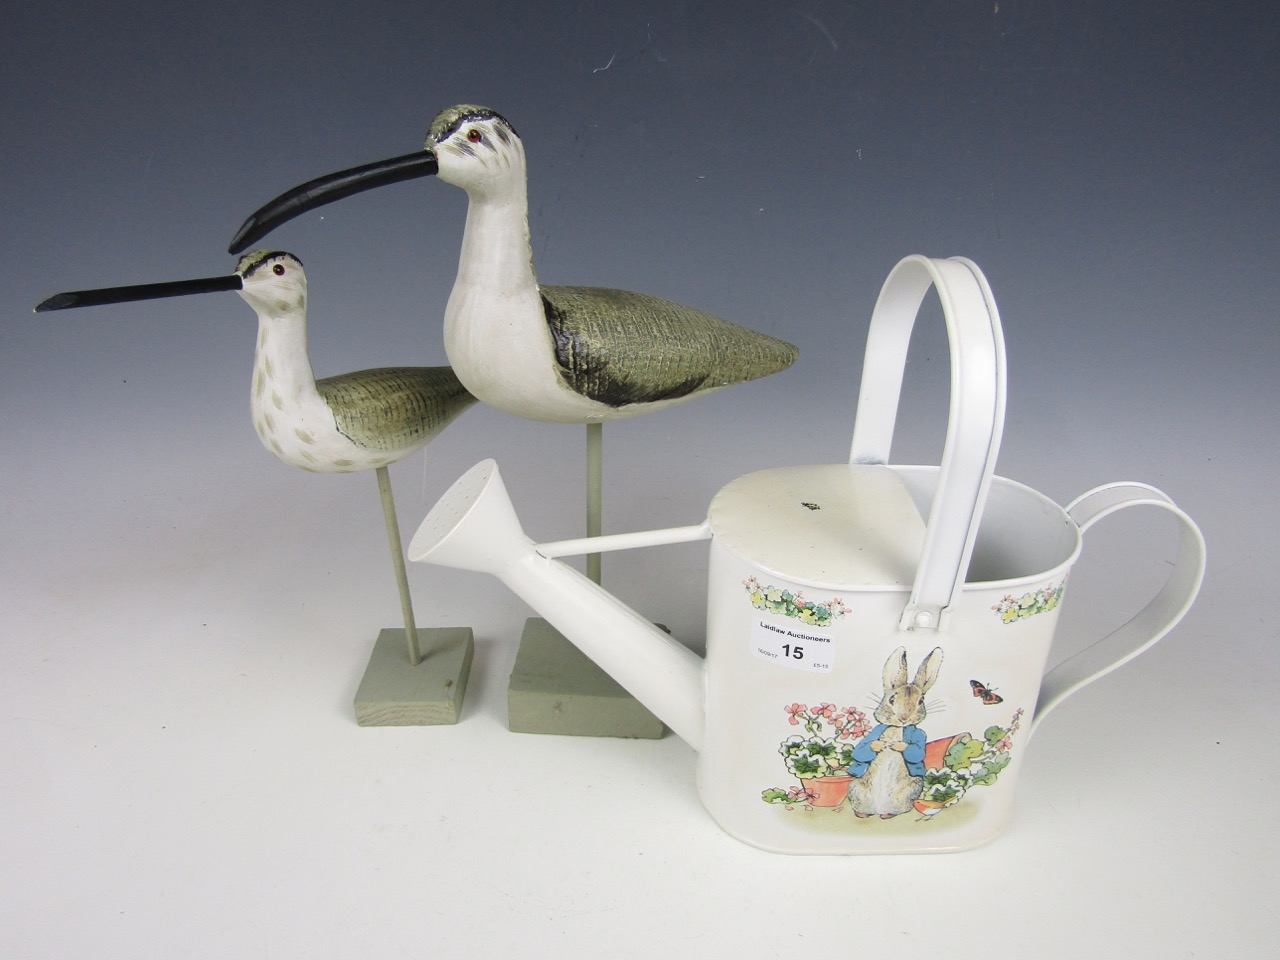 Lot 15 - A Border Fine Arts Peter Rabbit A22090 watering can together with two contemporary wooden bird